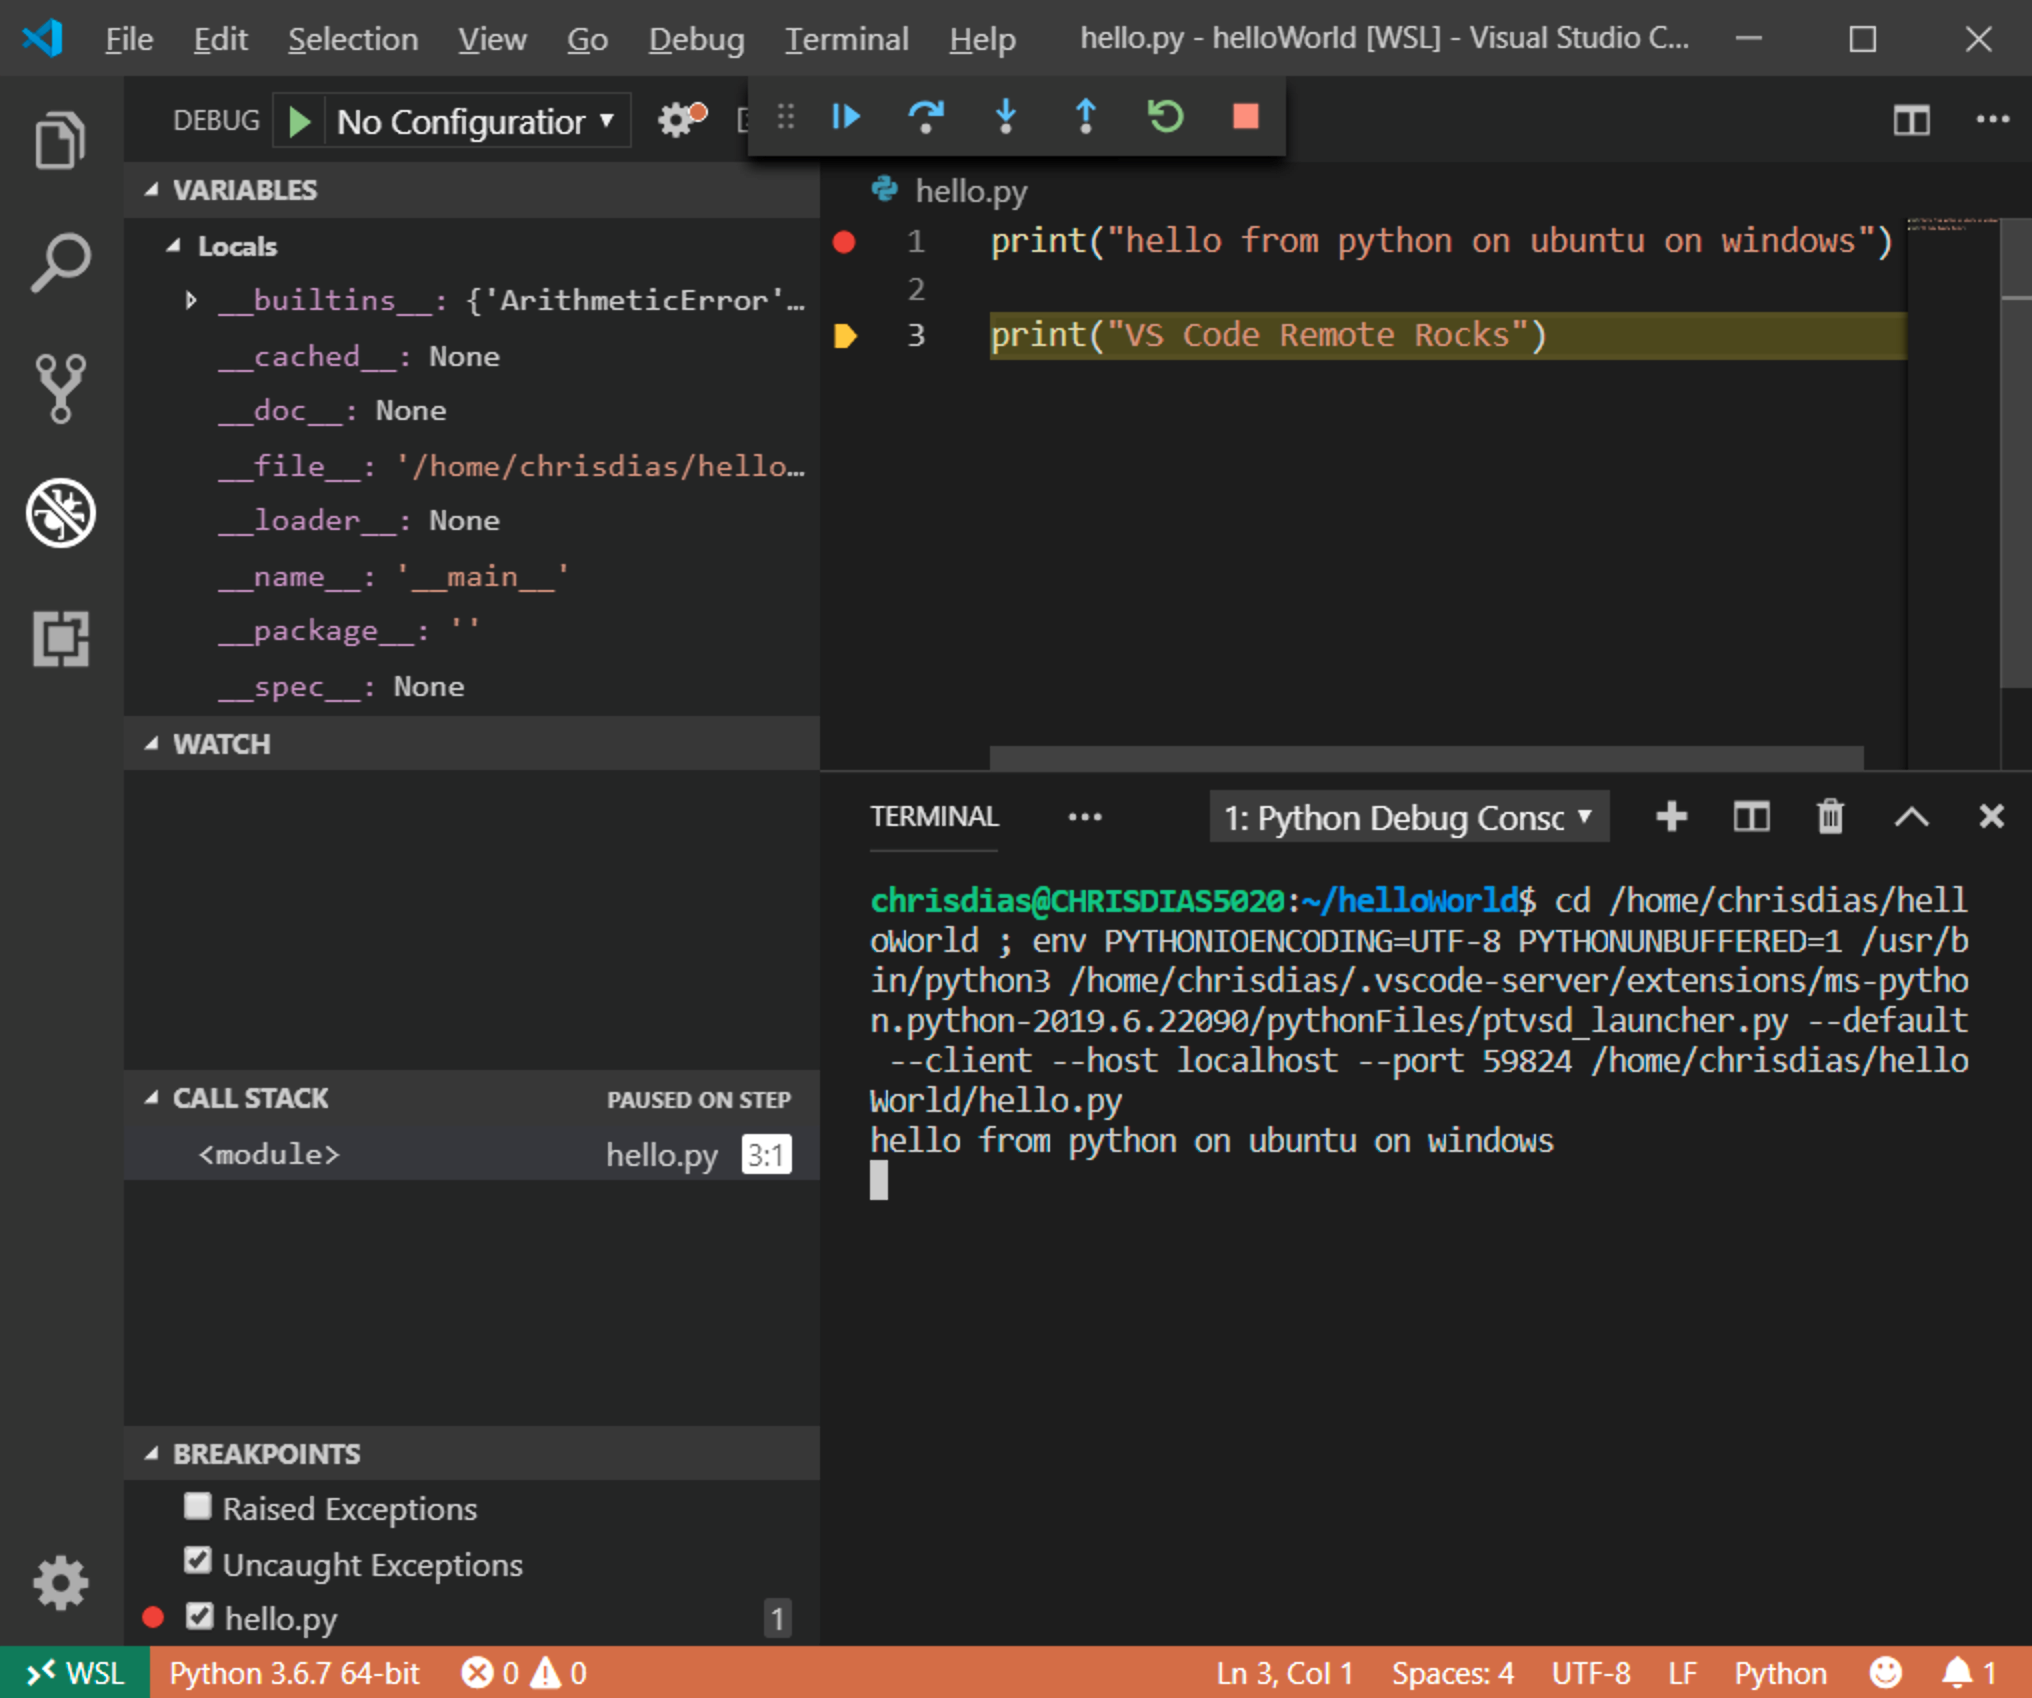 The VSCode IDE debug view